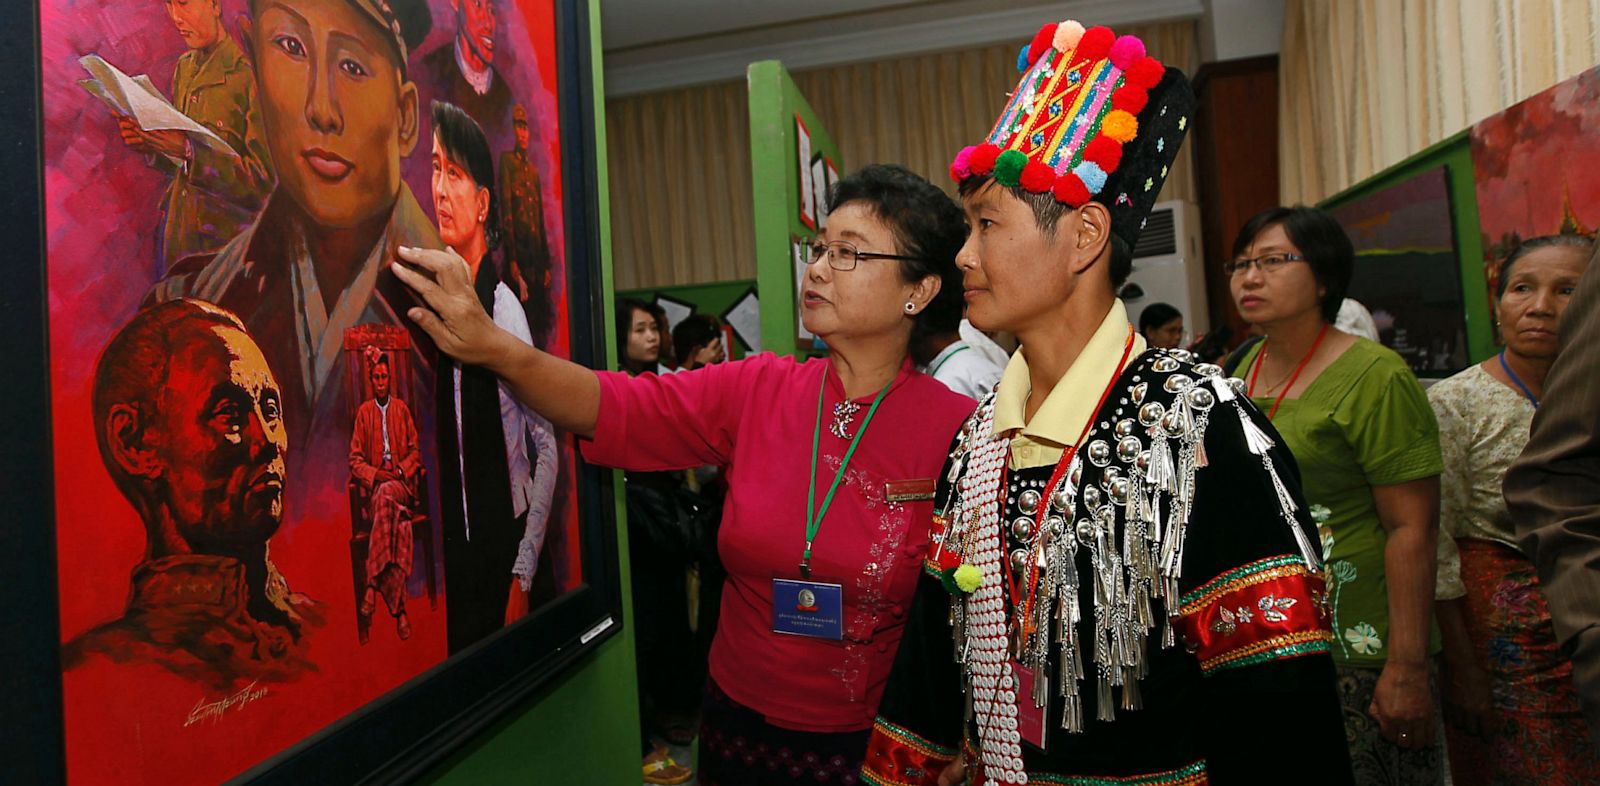 PHOTO: Vistors at Myanmar Convention Center